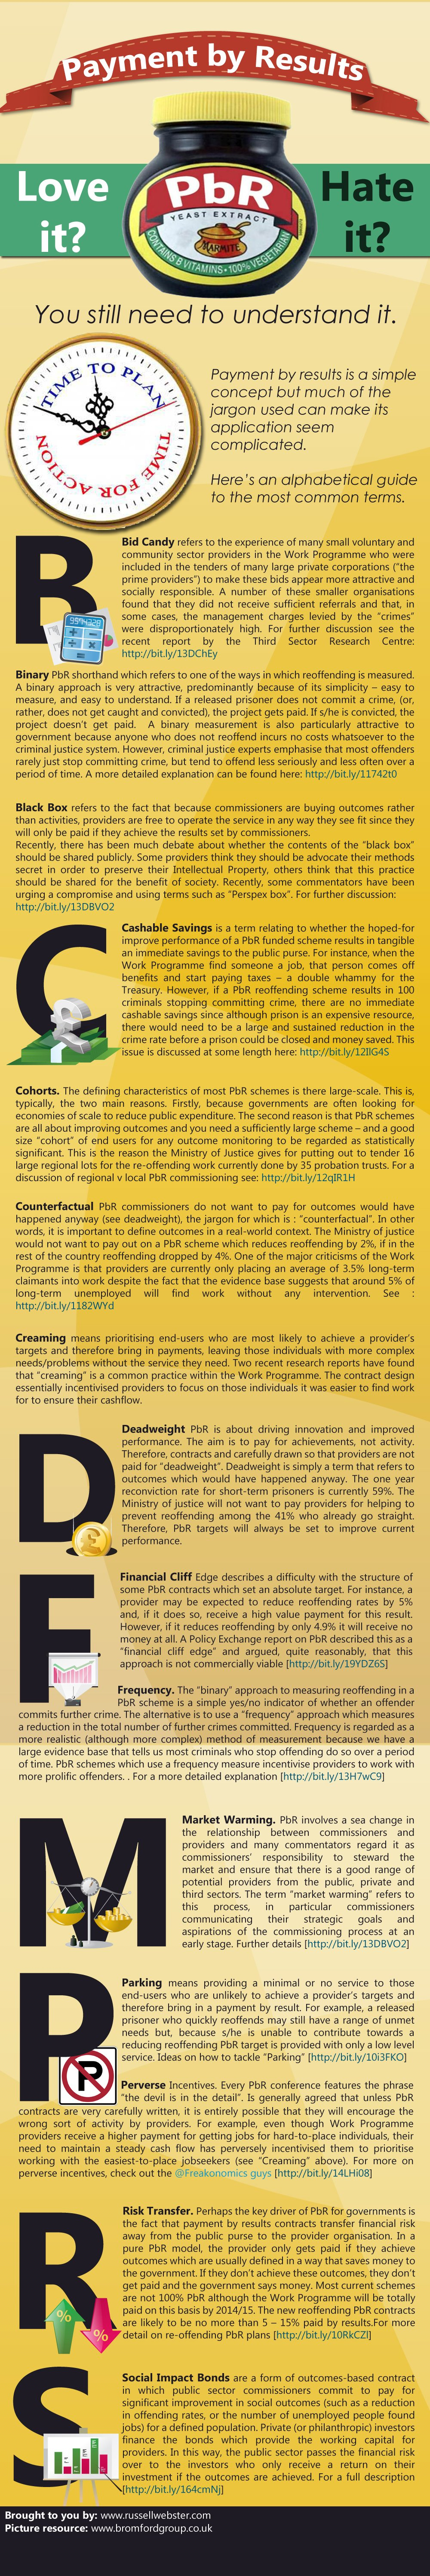 PbR infographic DONE